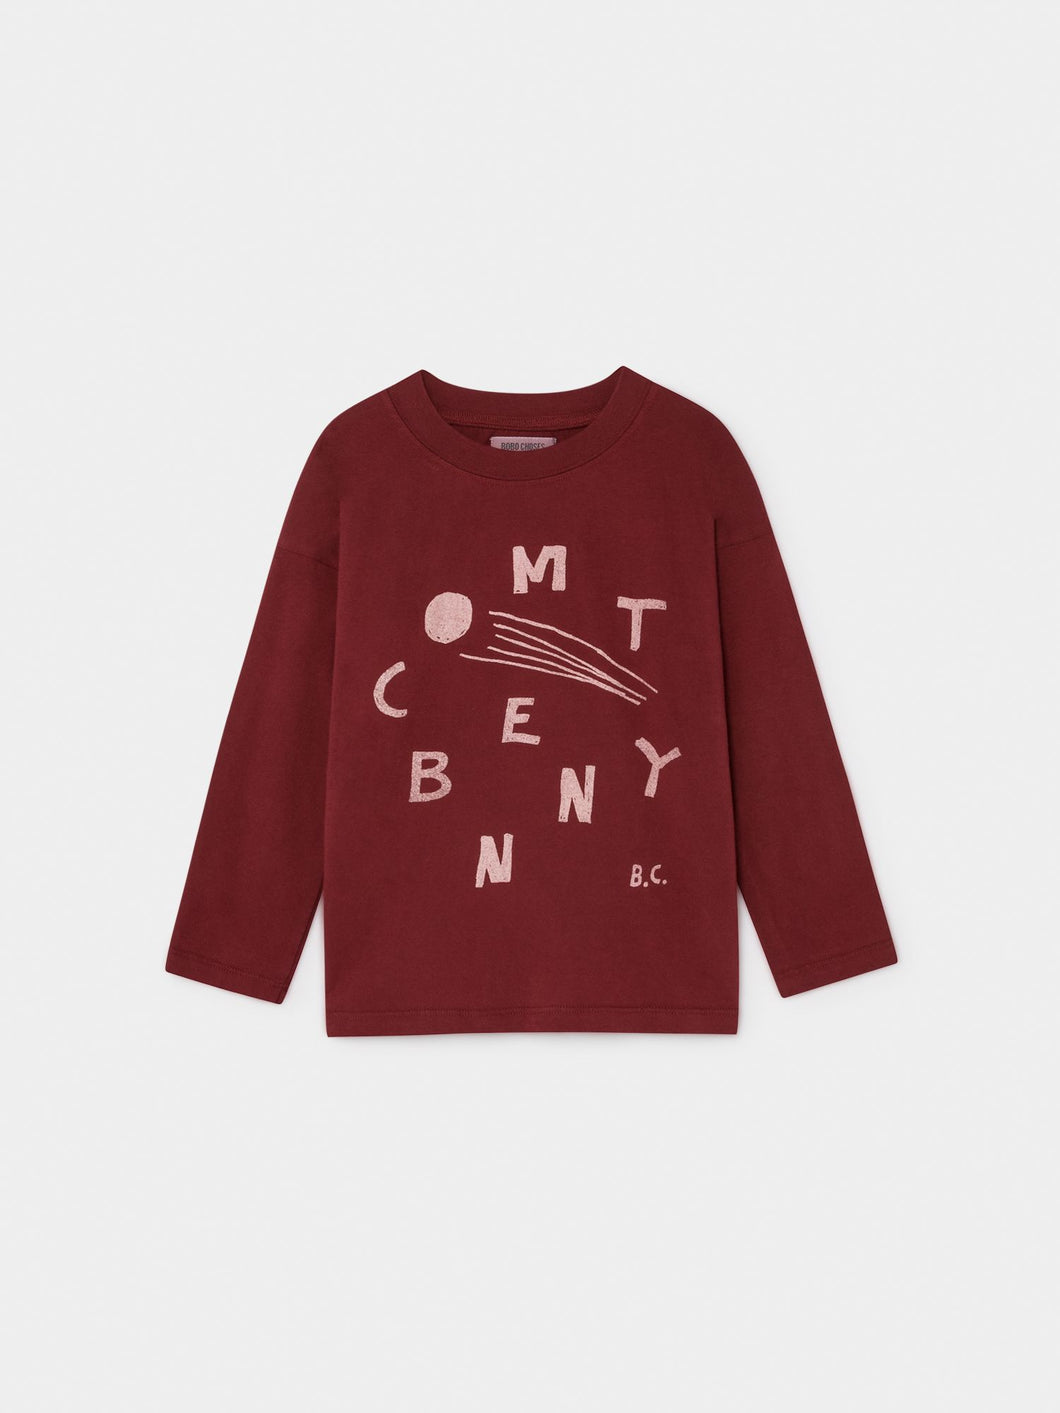 Cosmet Benny Long Sleeve T-shirt